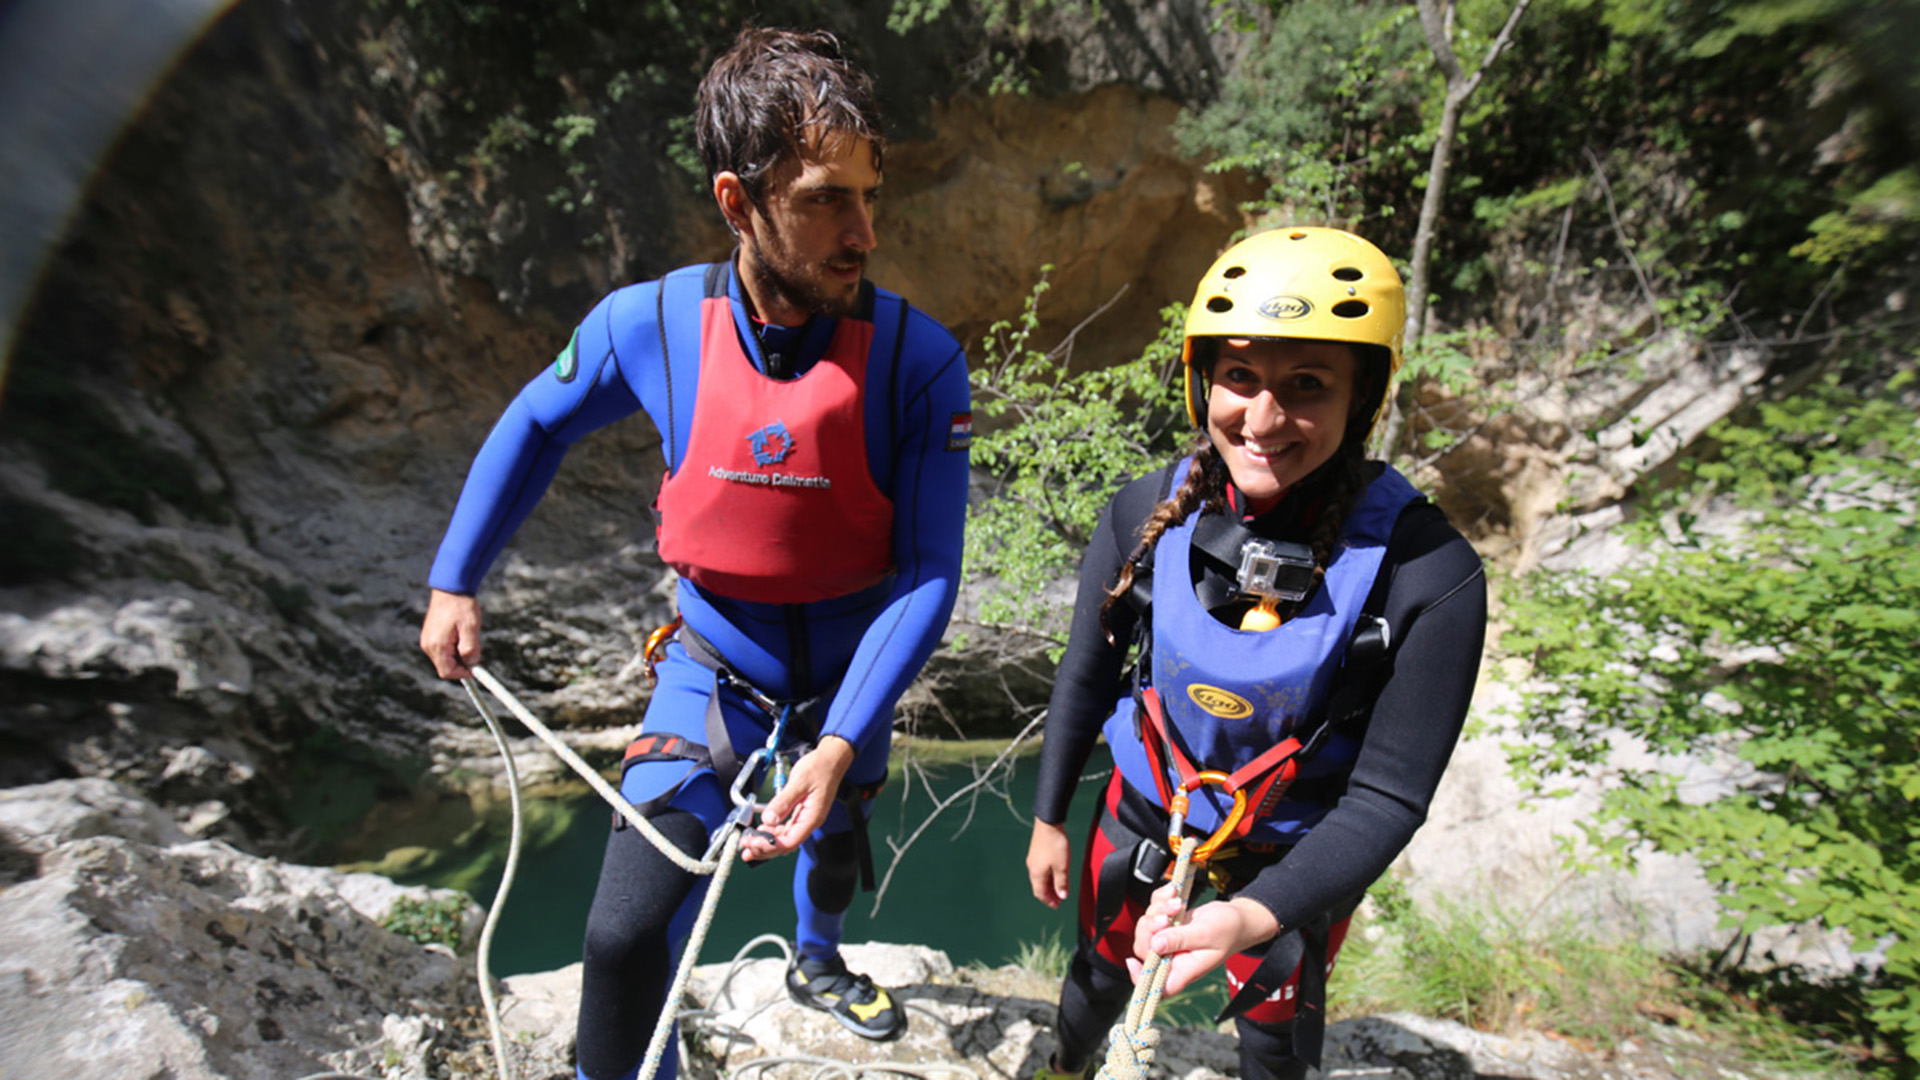 river canyoning adrenaline adventure 2